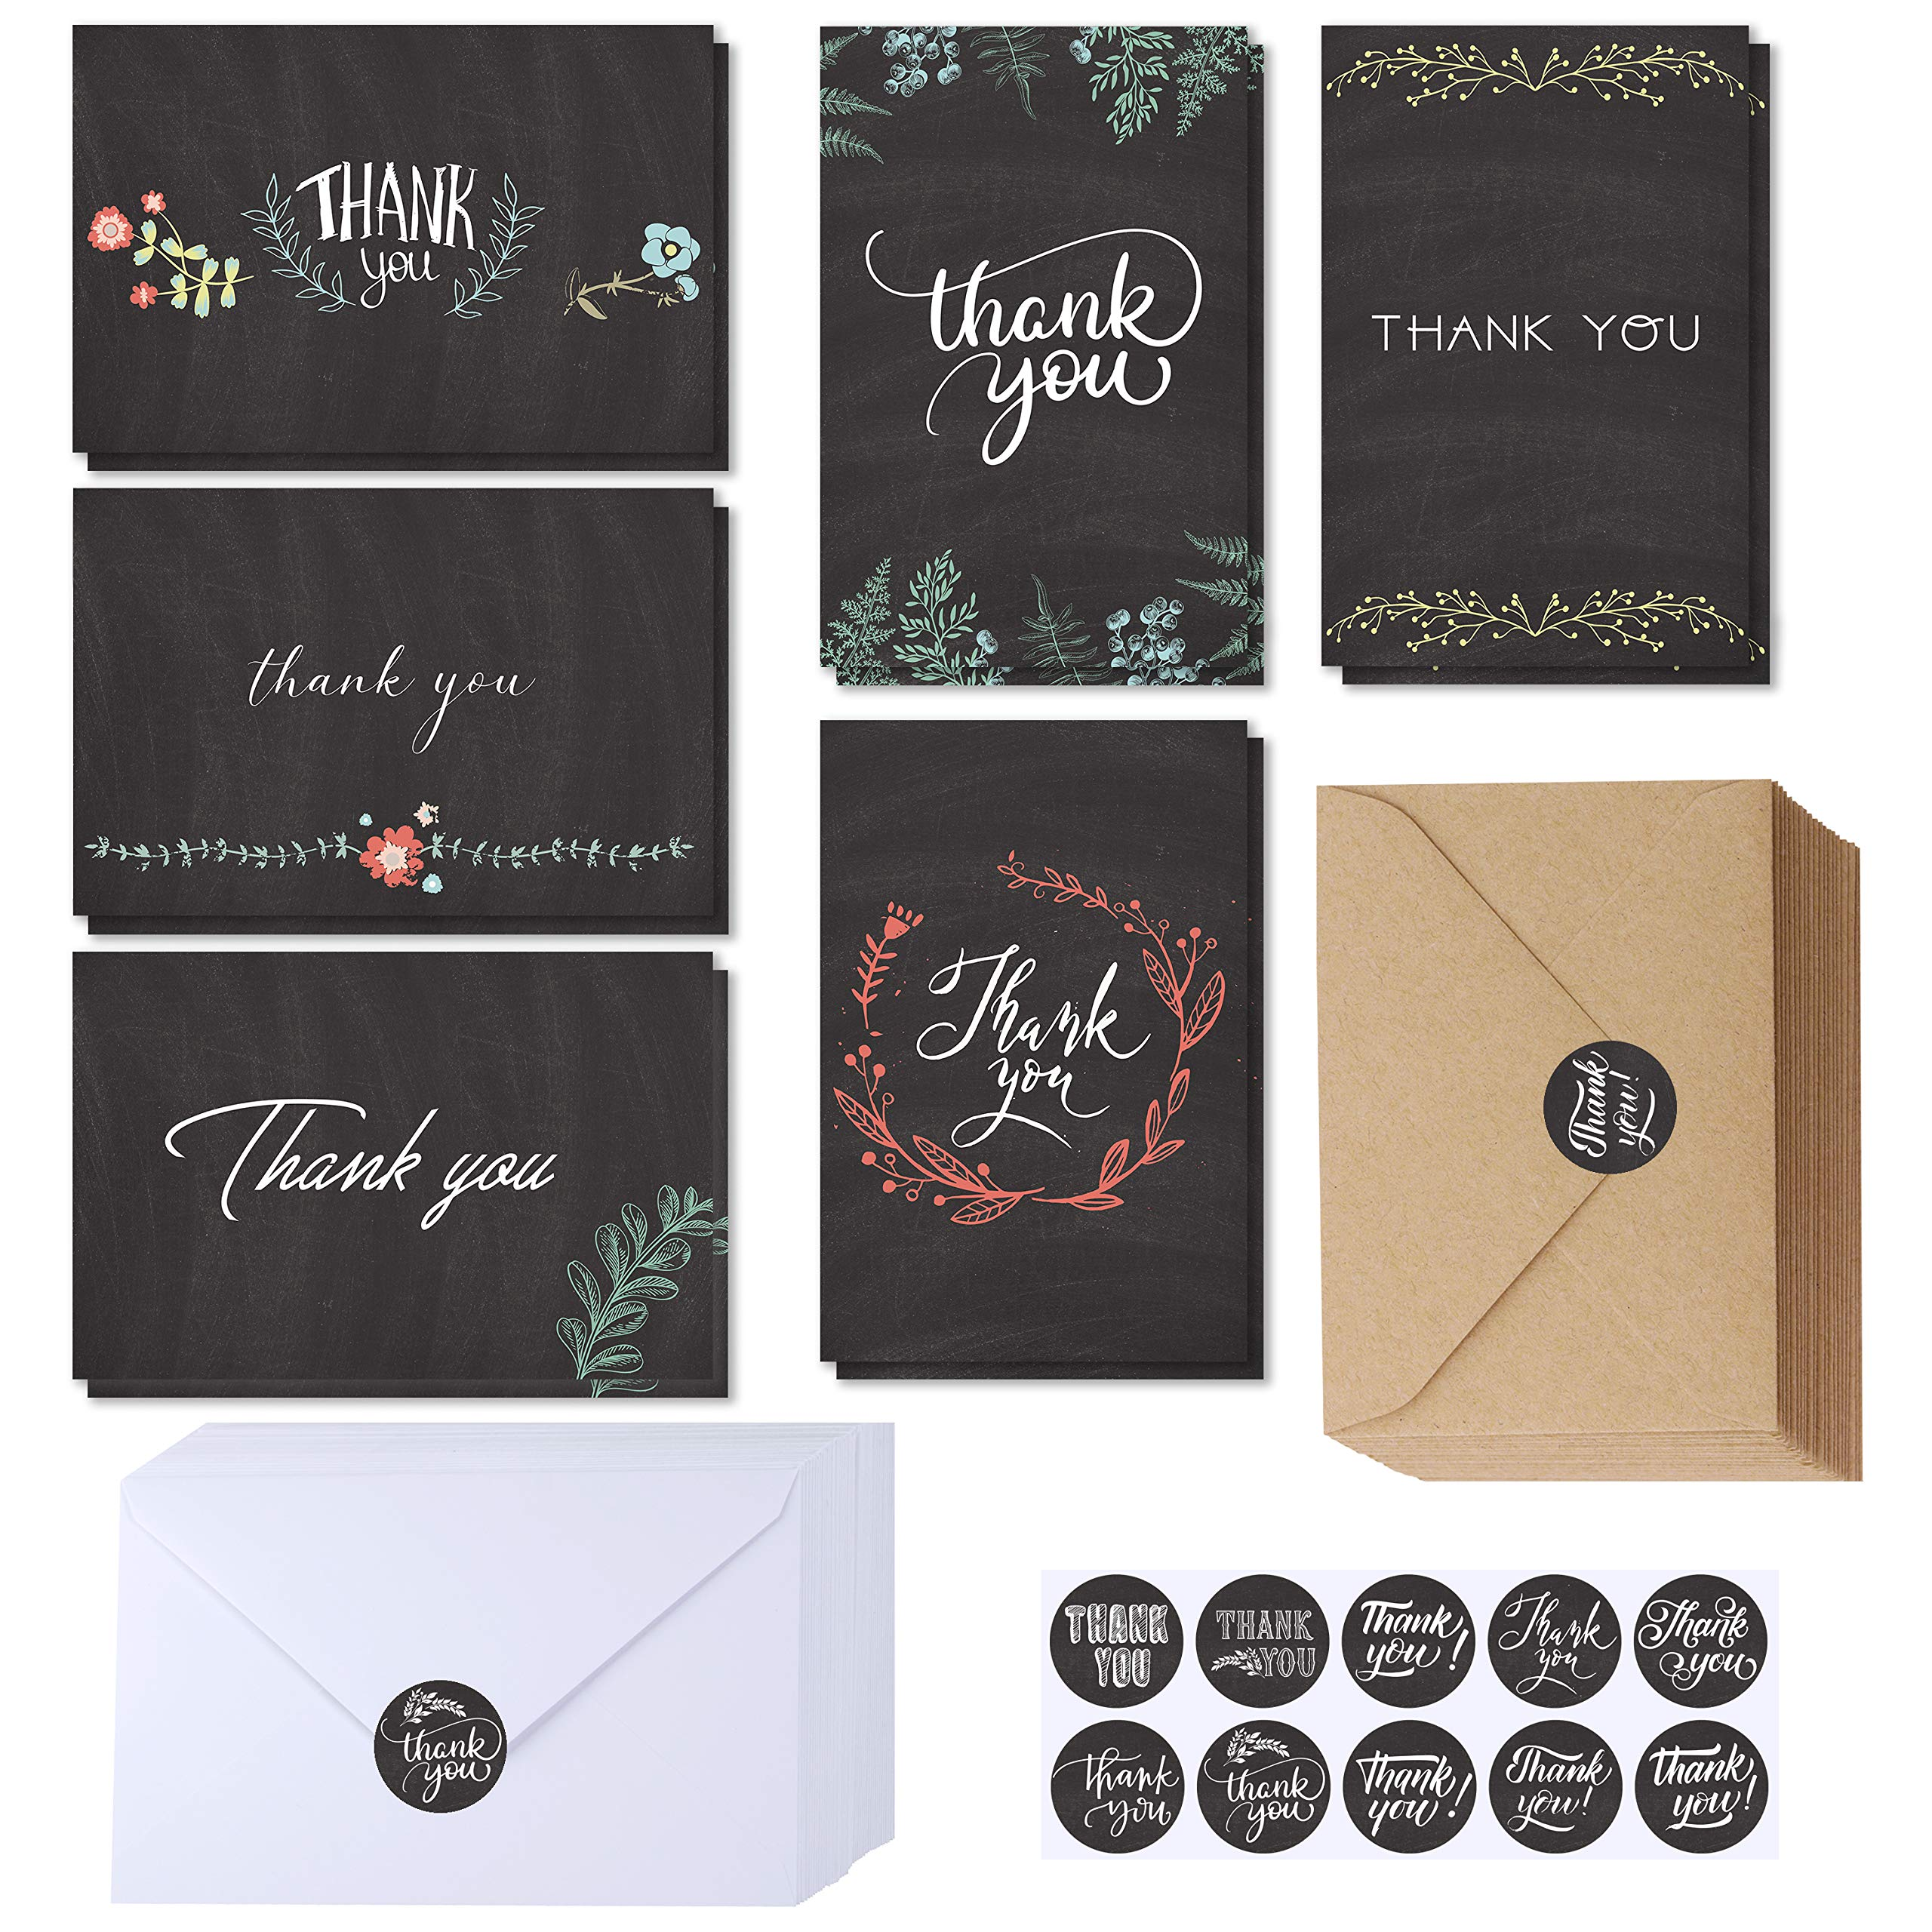 Supla 150 Sets Thank You Cards with Envelopes Stickers Bulk Thank You Notes 6 Designs of Chalkboard Floral Thank You Note Cards Vintage Blank Thank You Card 4 x 6 for Wedding Bridal Baby Shower by windiy